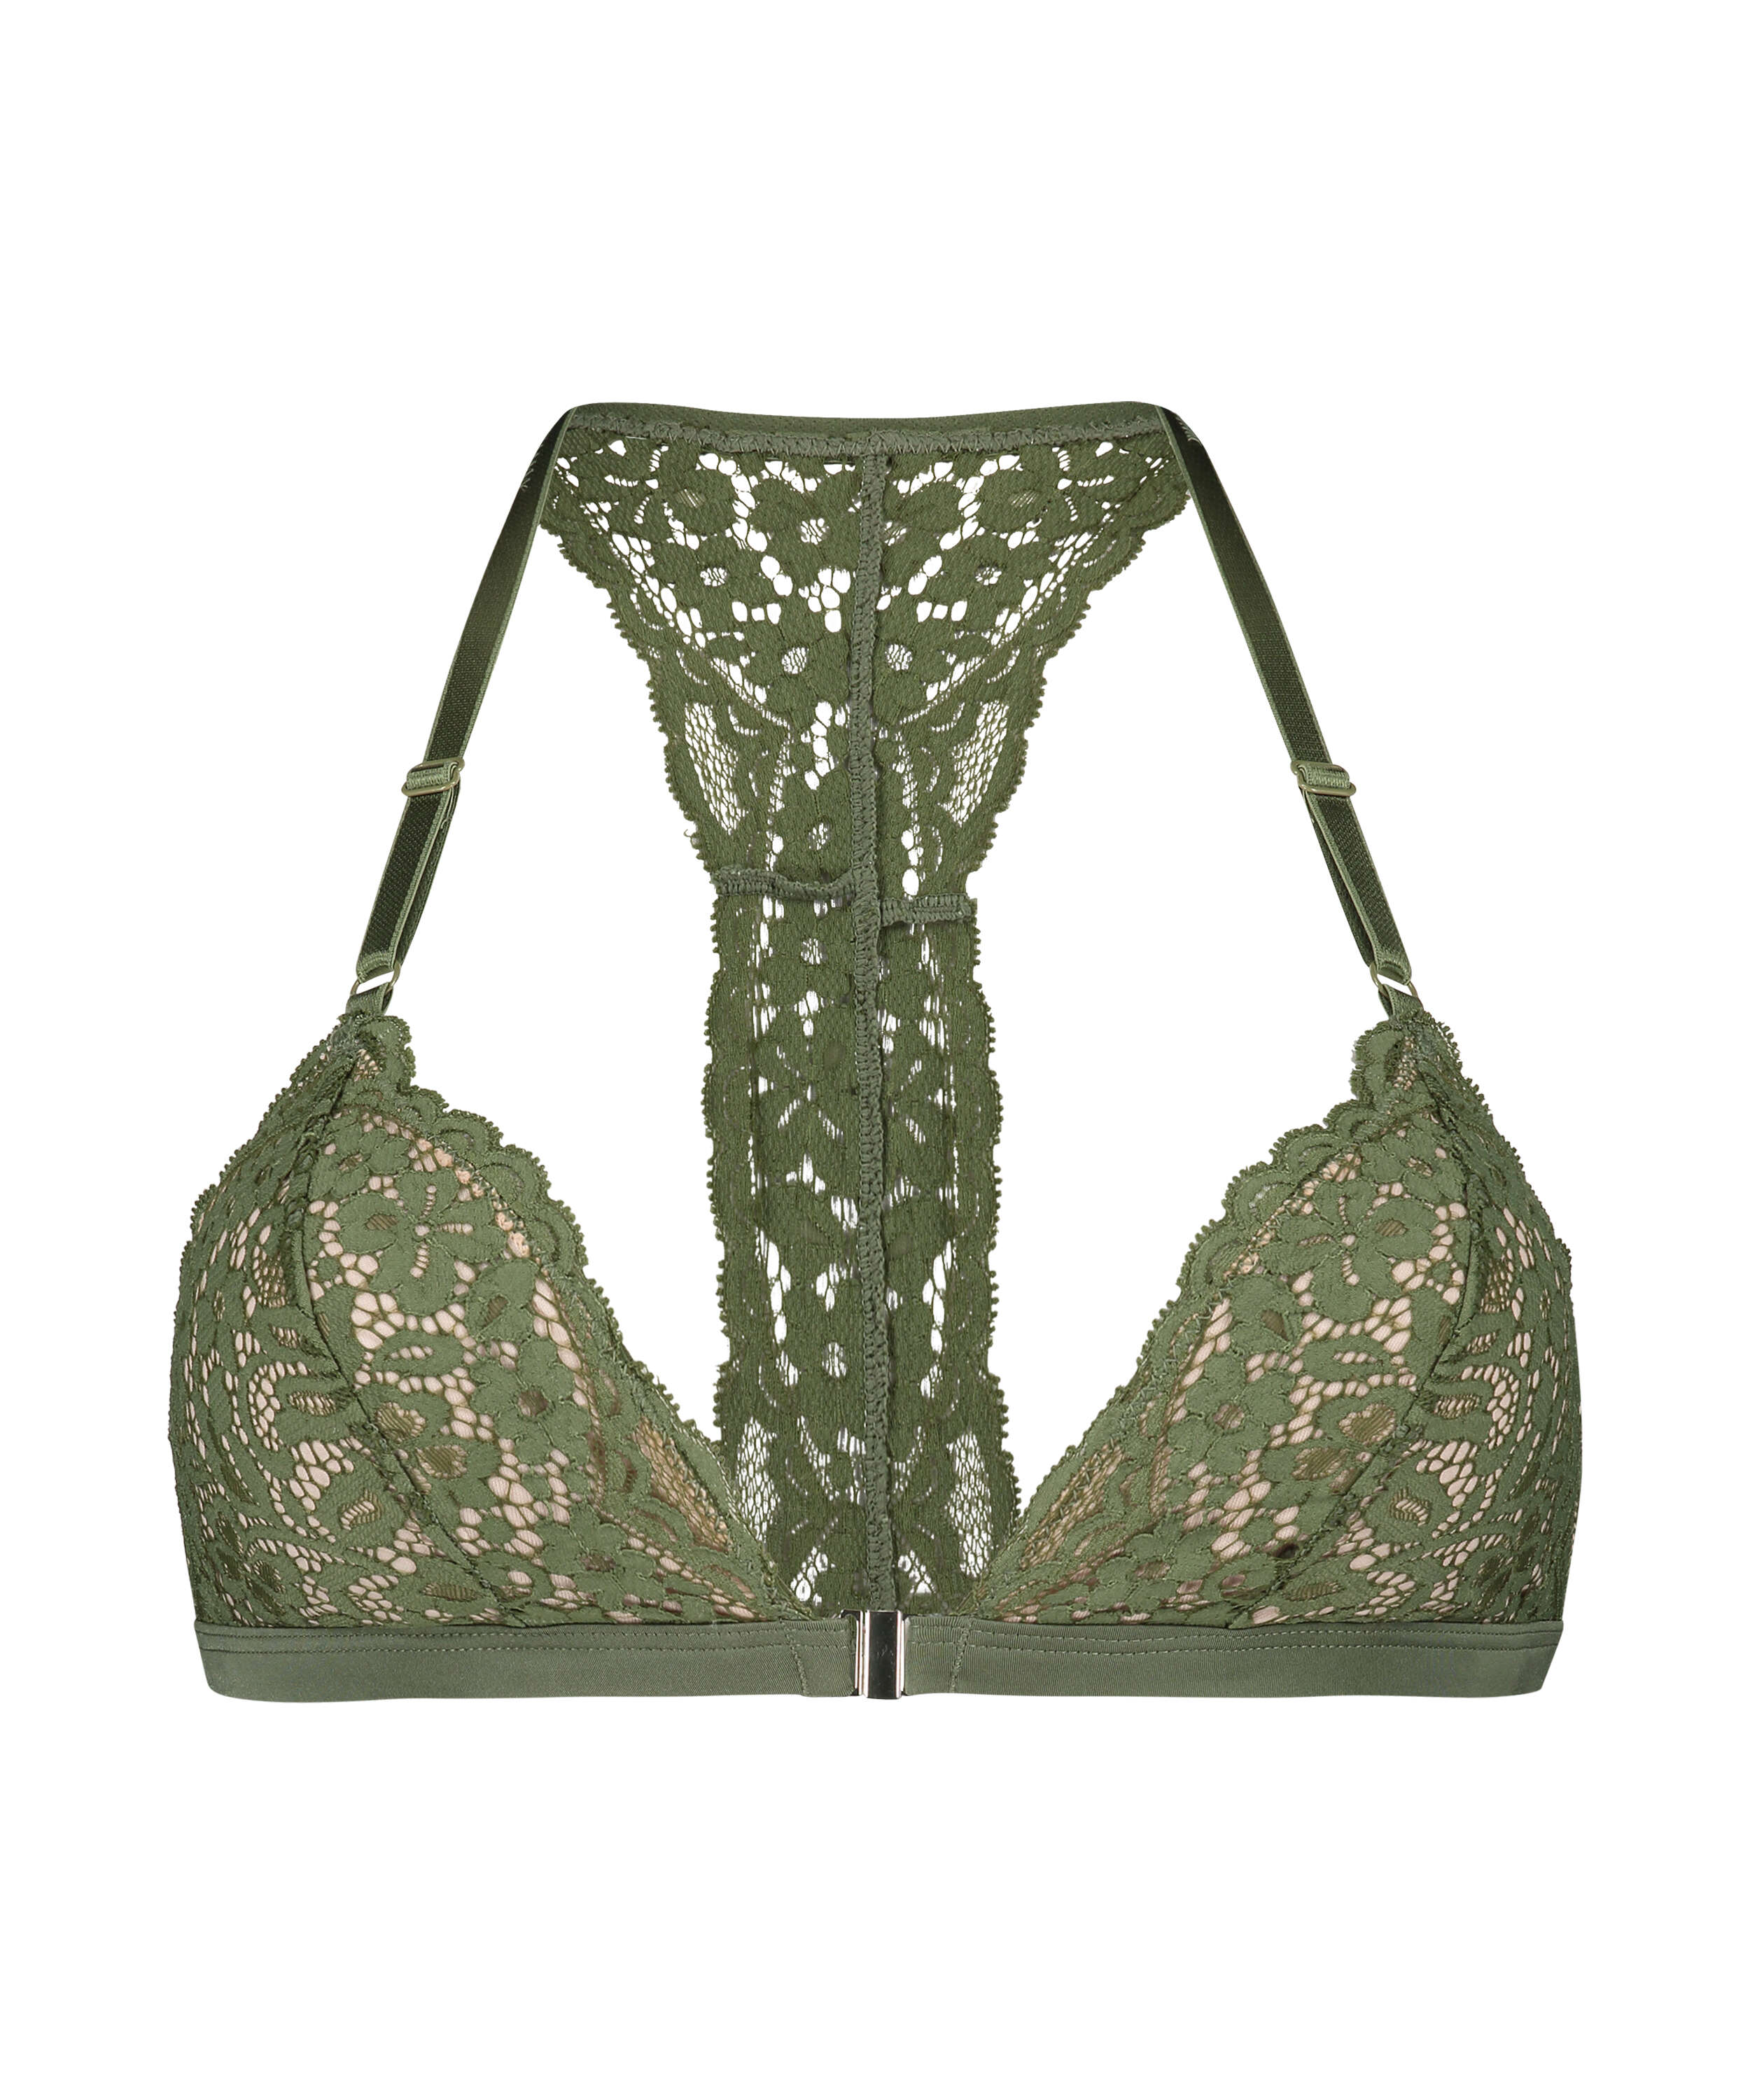 Bralette triangular preformado Rose, Verde, main